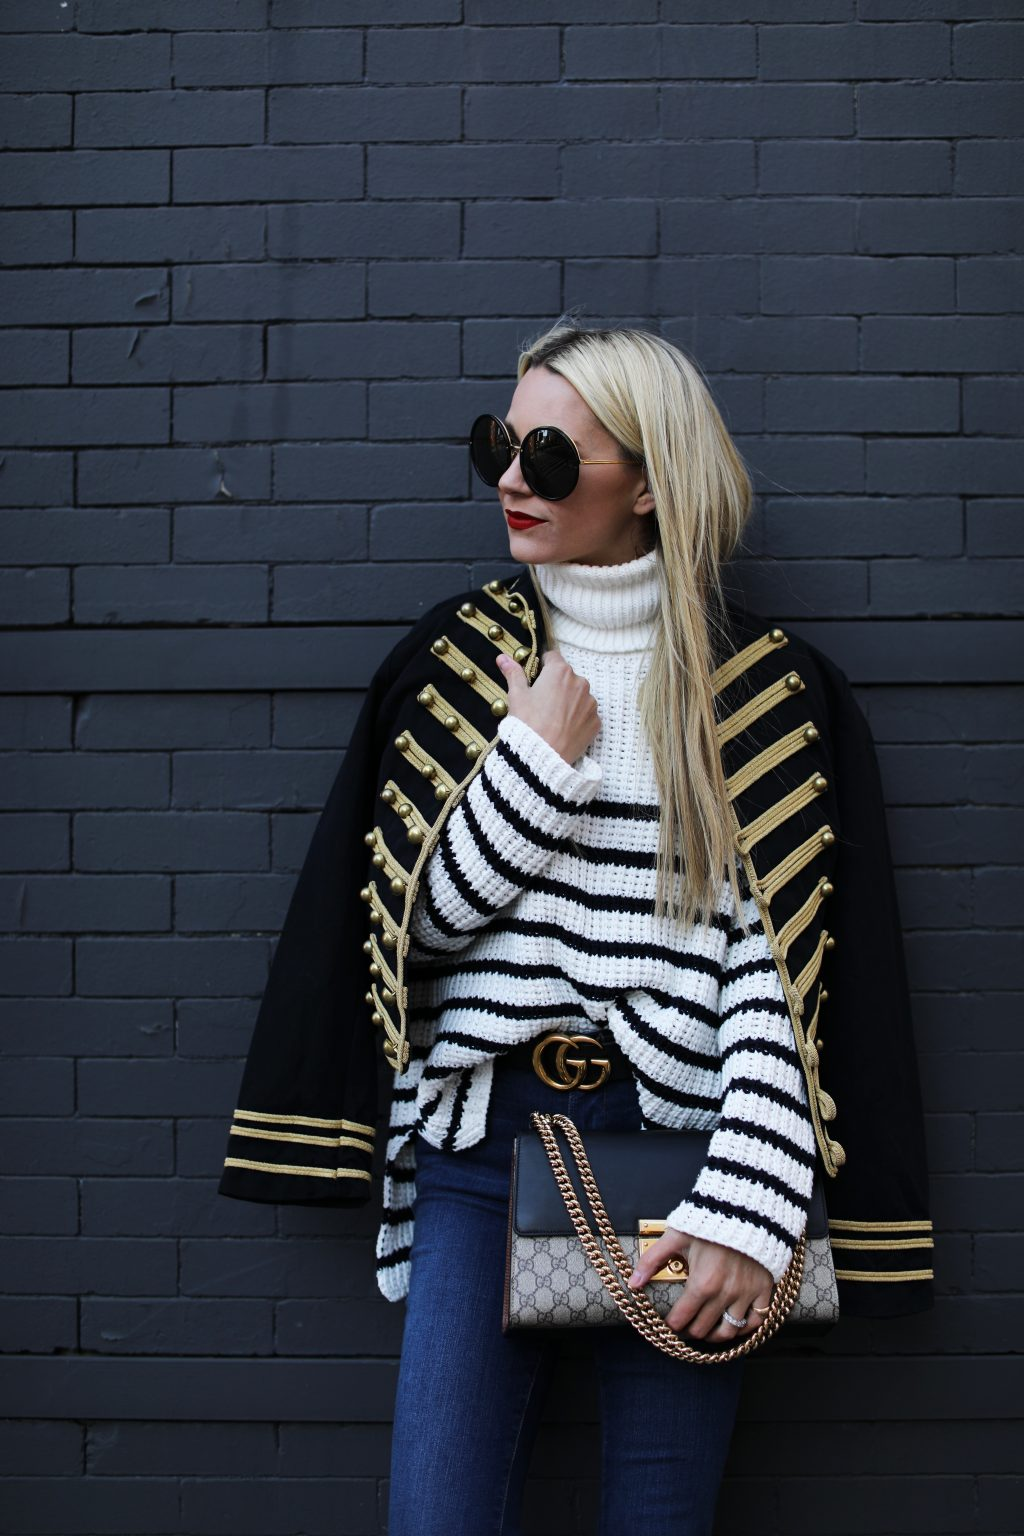 blair-eadie-atlantic-pacific-blog-blogger-nyc-street-style-gucci-frame-figue